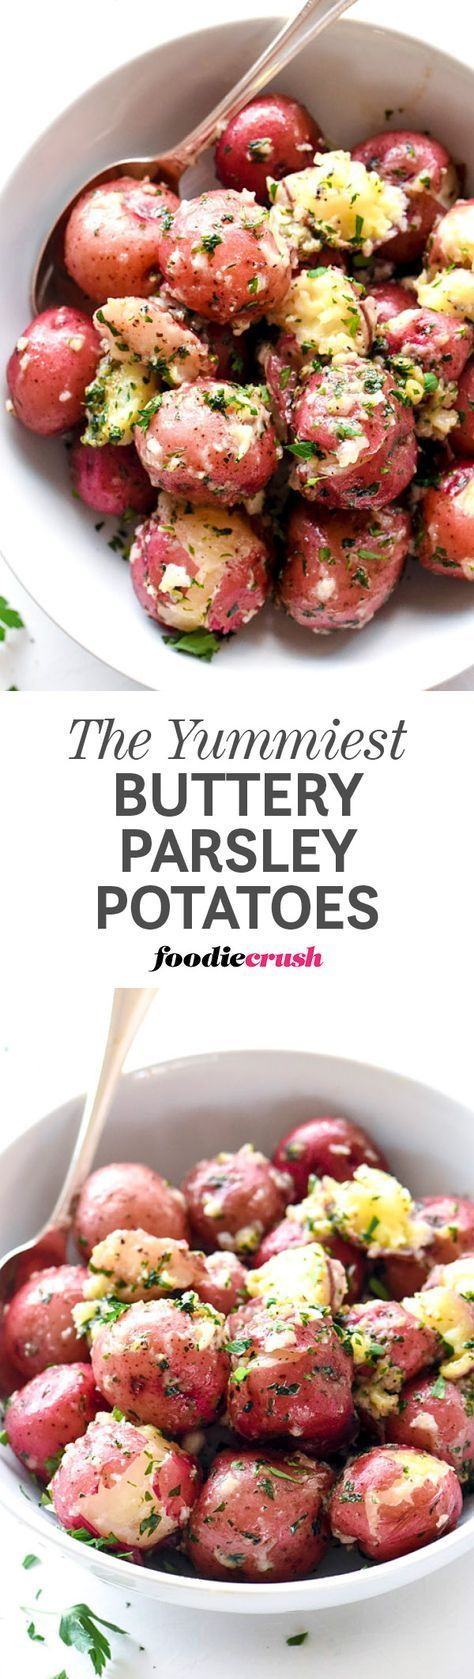 The Best Buttery Parsley Potatoes.